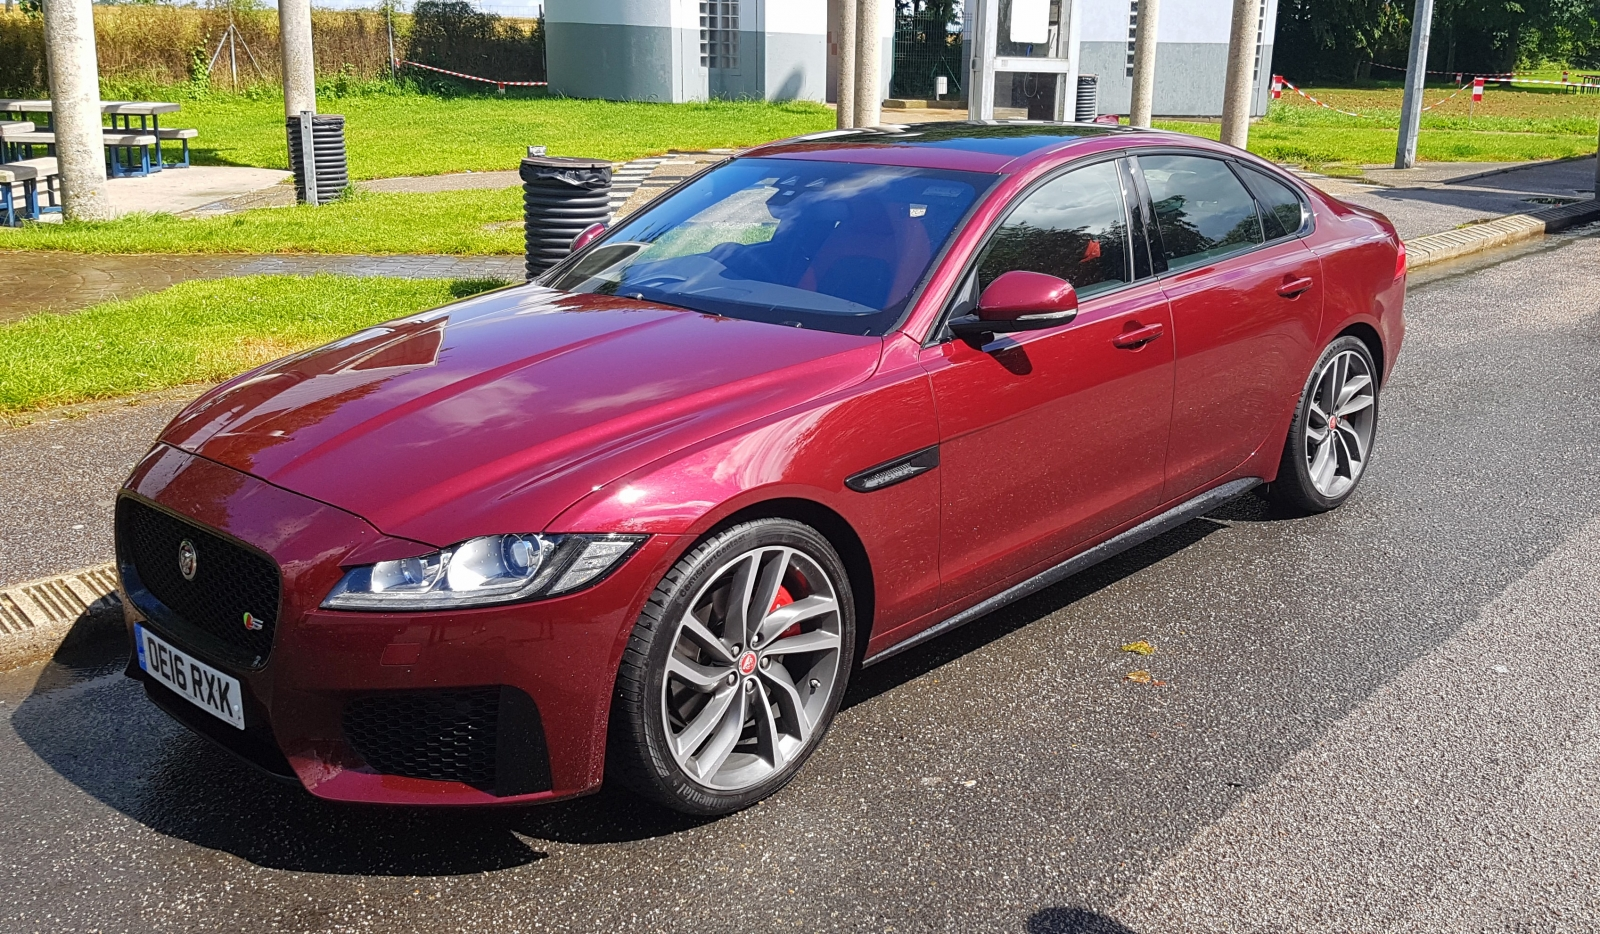 Jaguar XF V6 Supercharged Review A Big Jag For The 21st